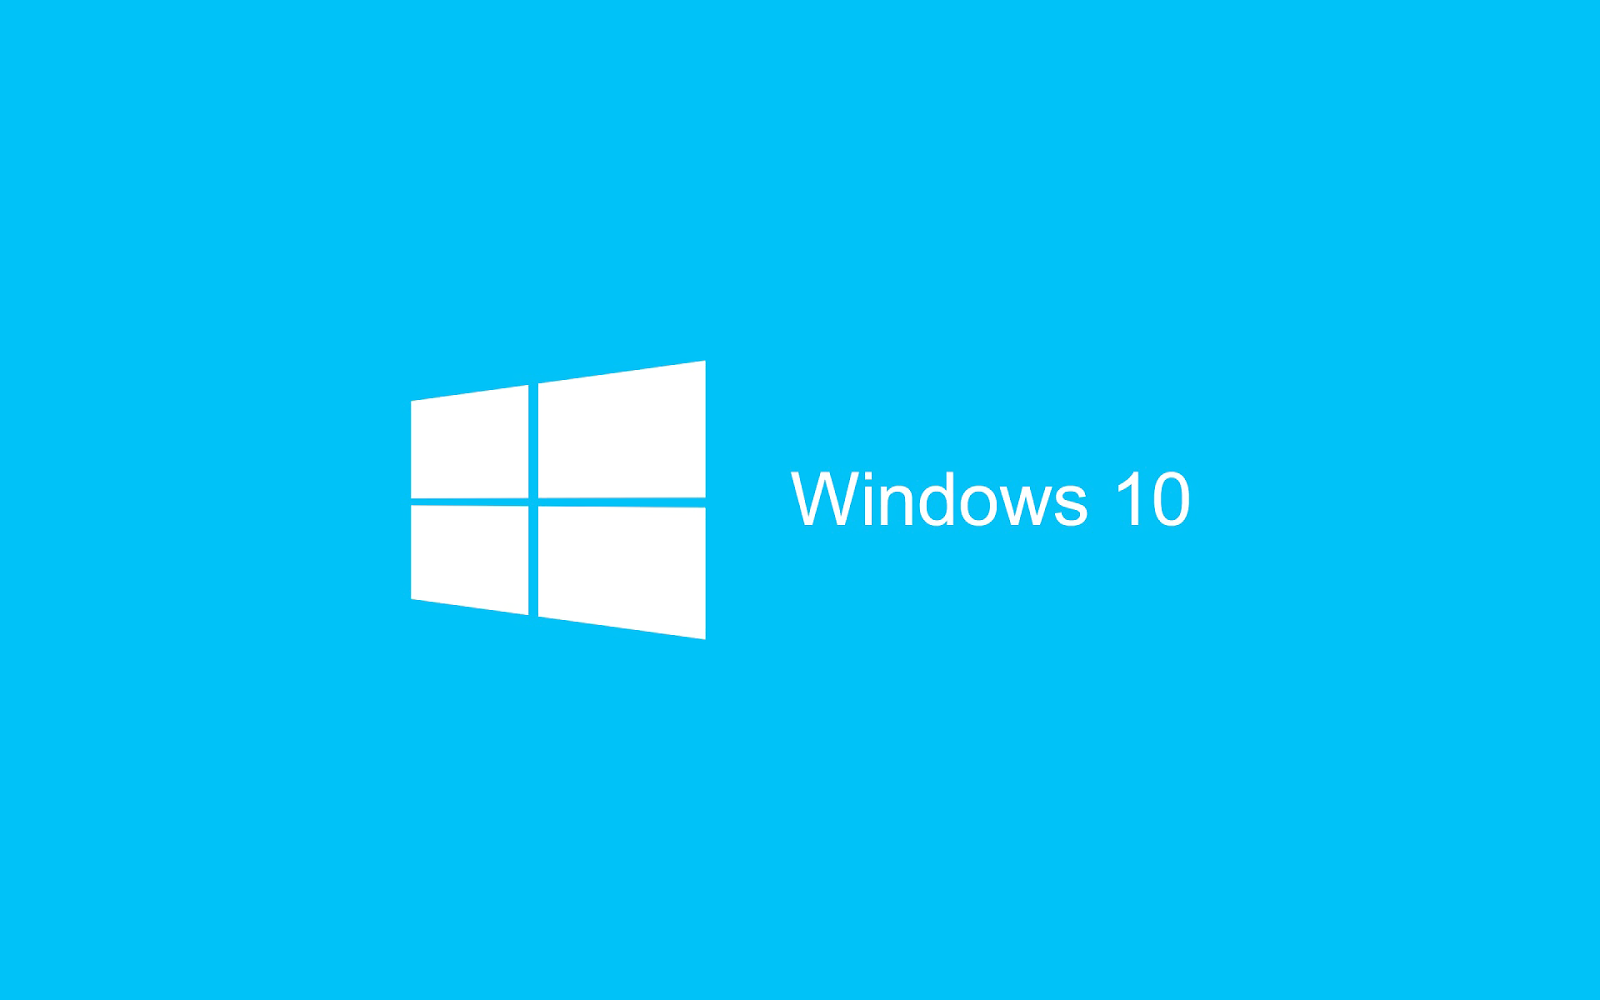 Blauen Windows 10 wallpaper